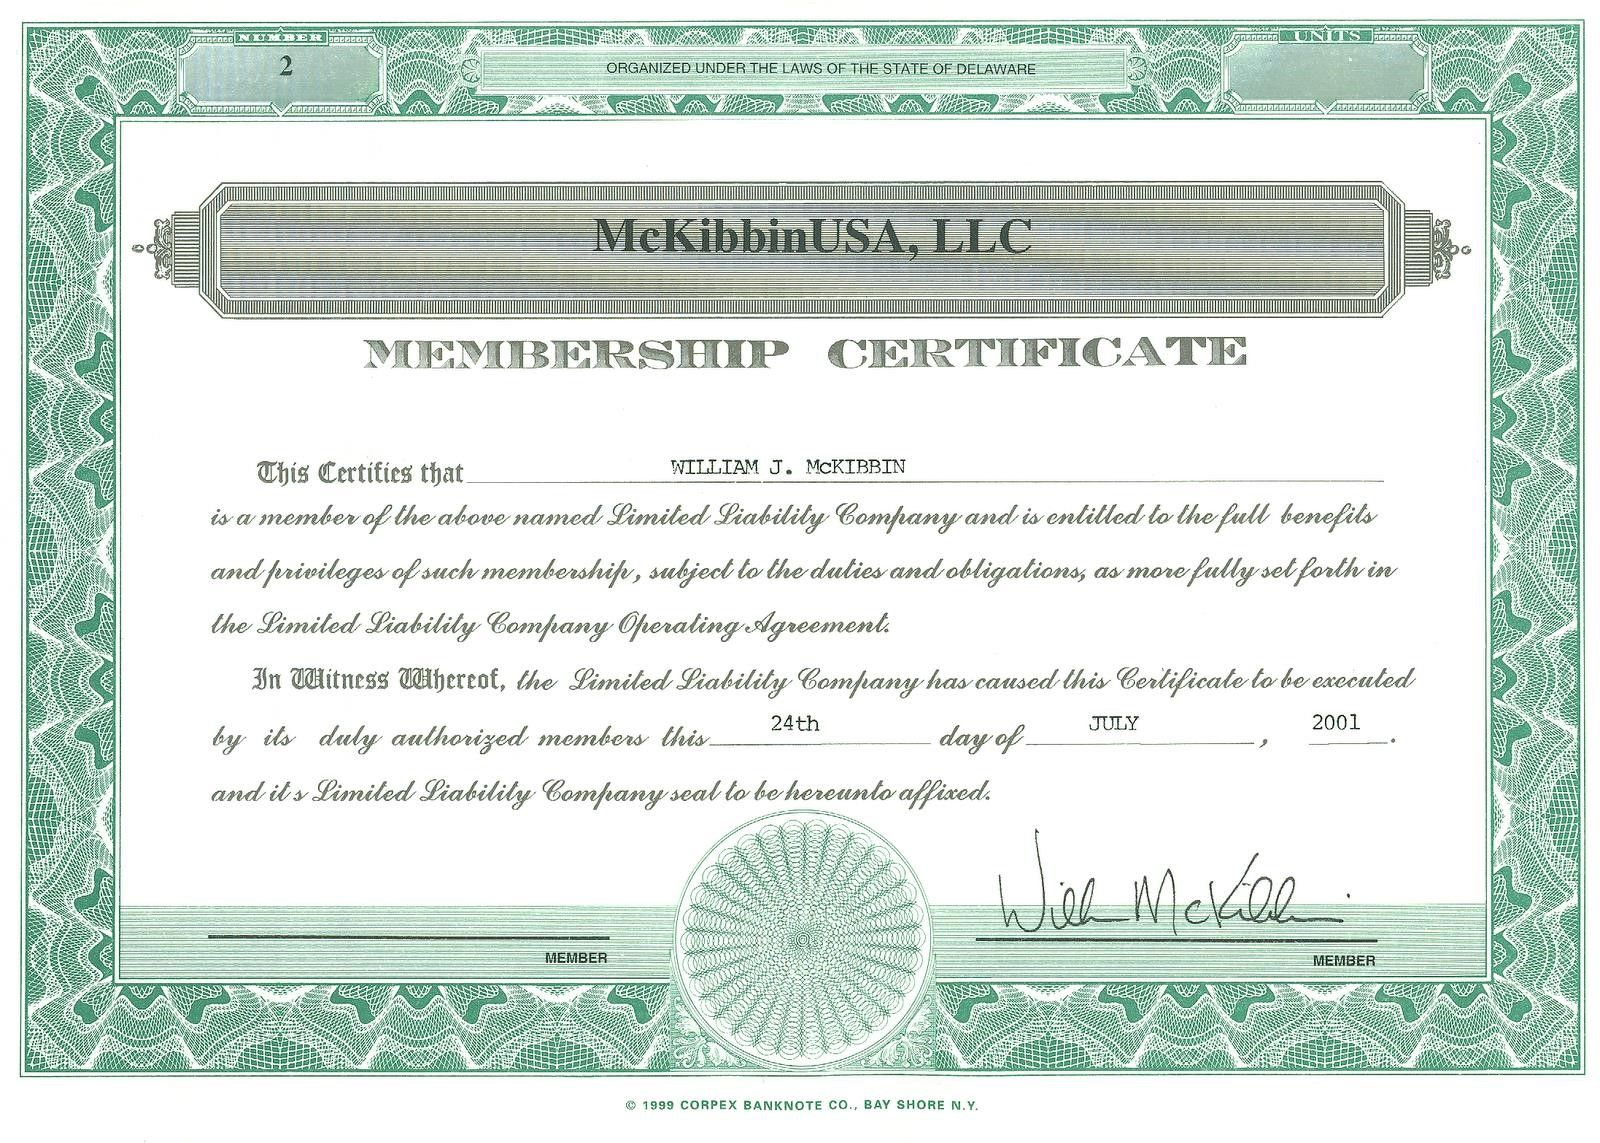 The Stunning Certificates Awesome Llc Membership Certificate Template Throughout Llc Memb Certificate Templates Best Templates Graduation Certificate Template Llc membership certificate template free